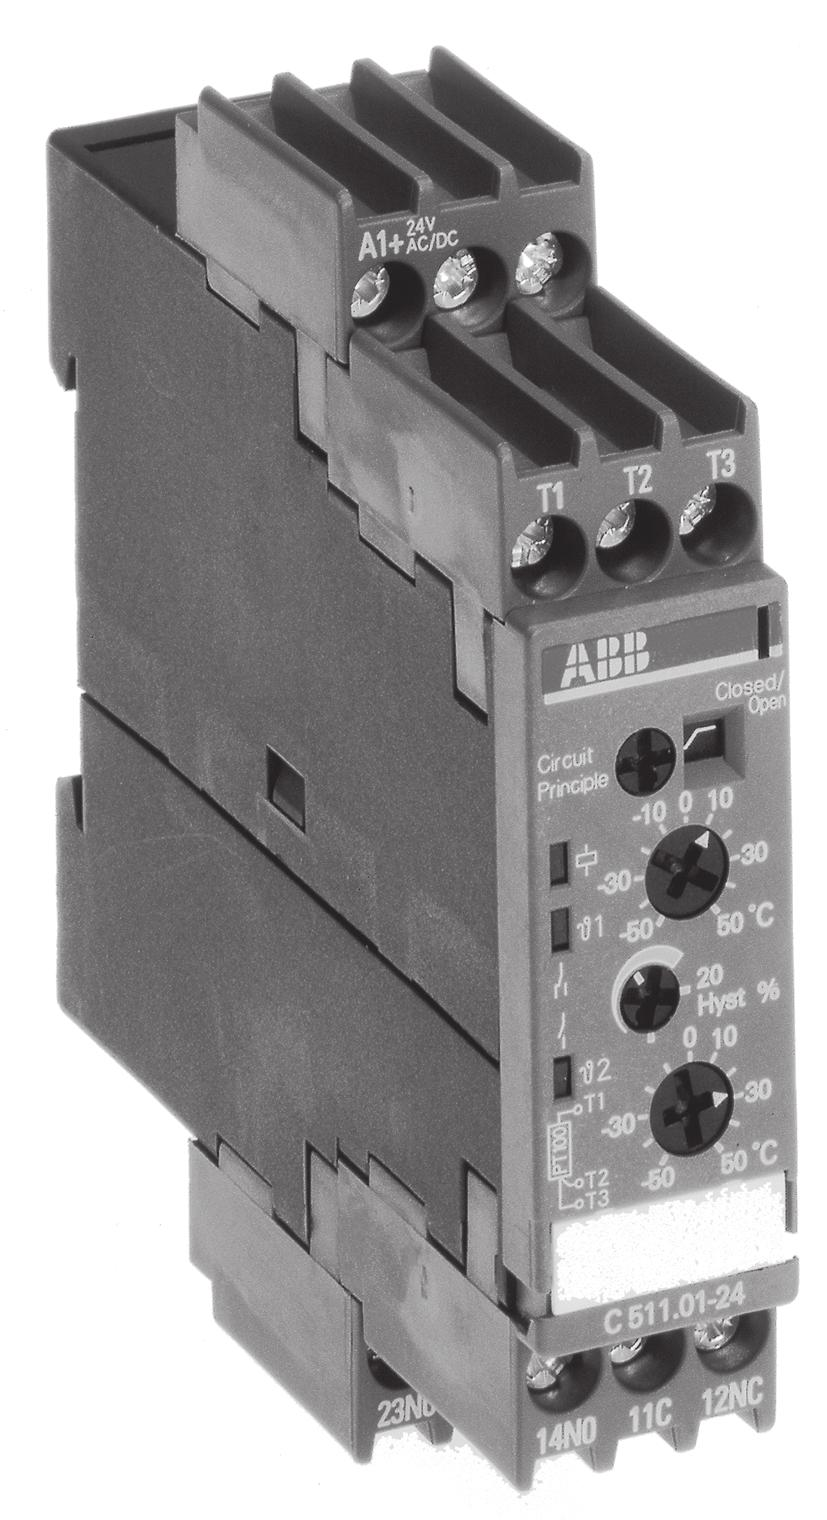 Electronic Measuring And Monitoring Relays Cm Range Pdf 24v05a Regulated Power Supply Circuit Powersupplycircuit C511 2 Threshold Value With Two Values Additional Settable For Second